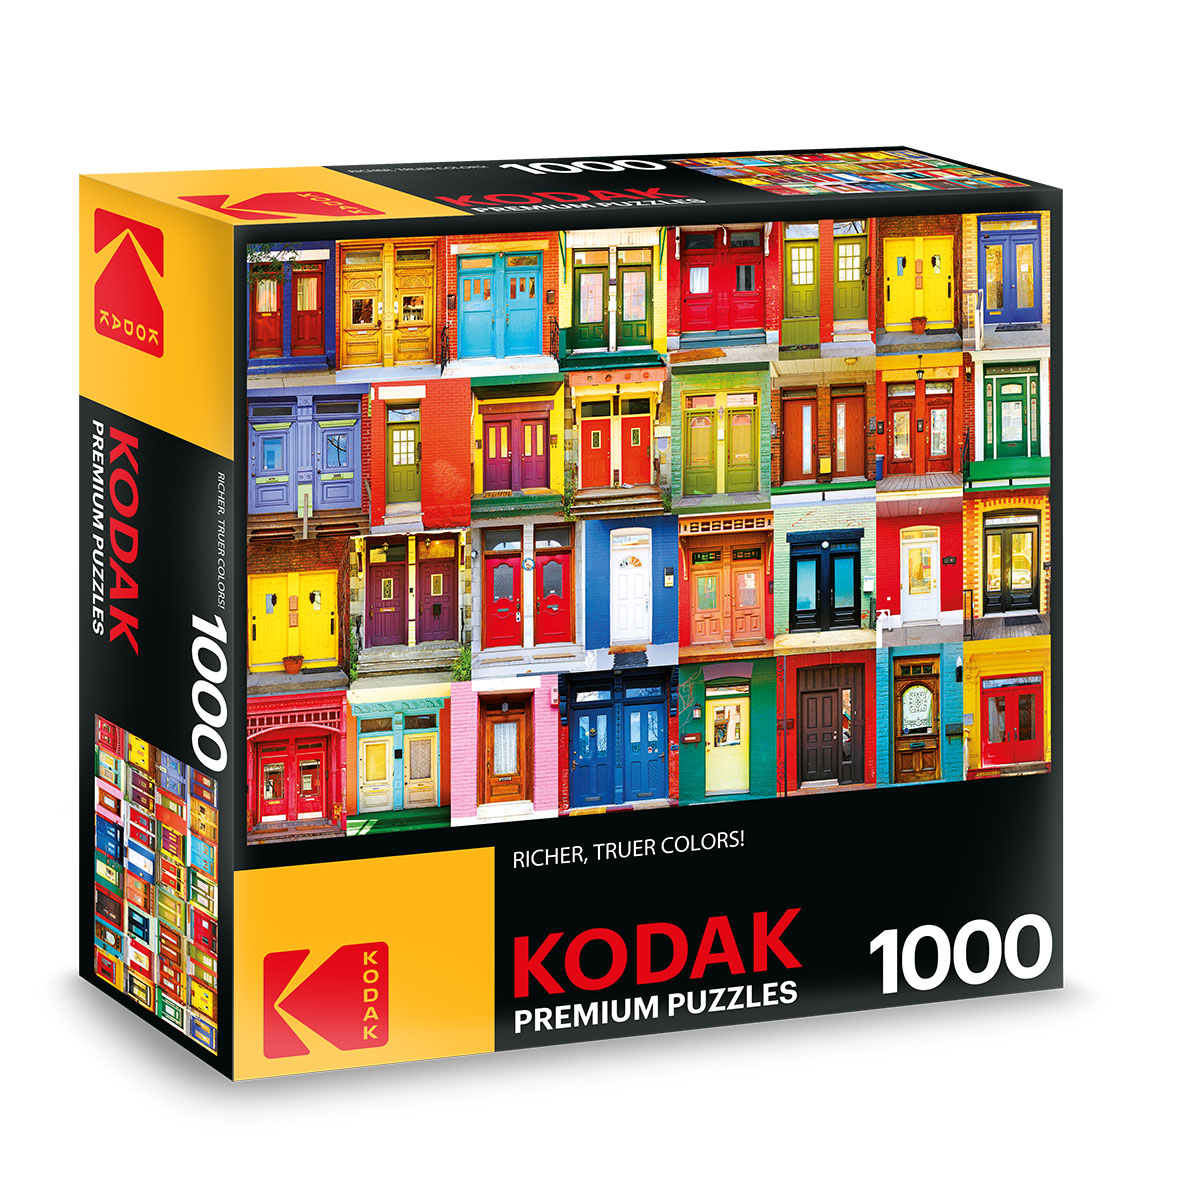 KODAK Premium Puzzles - Colorful Montreal Doors Everyday Objects Jigsaw Puzzle